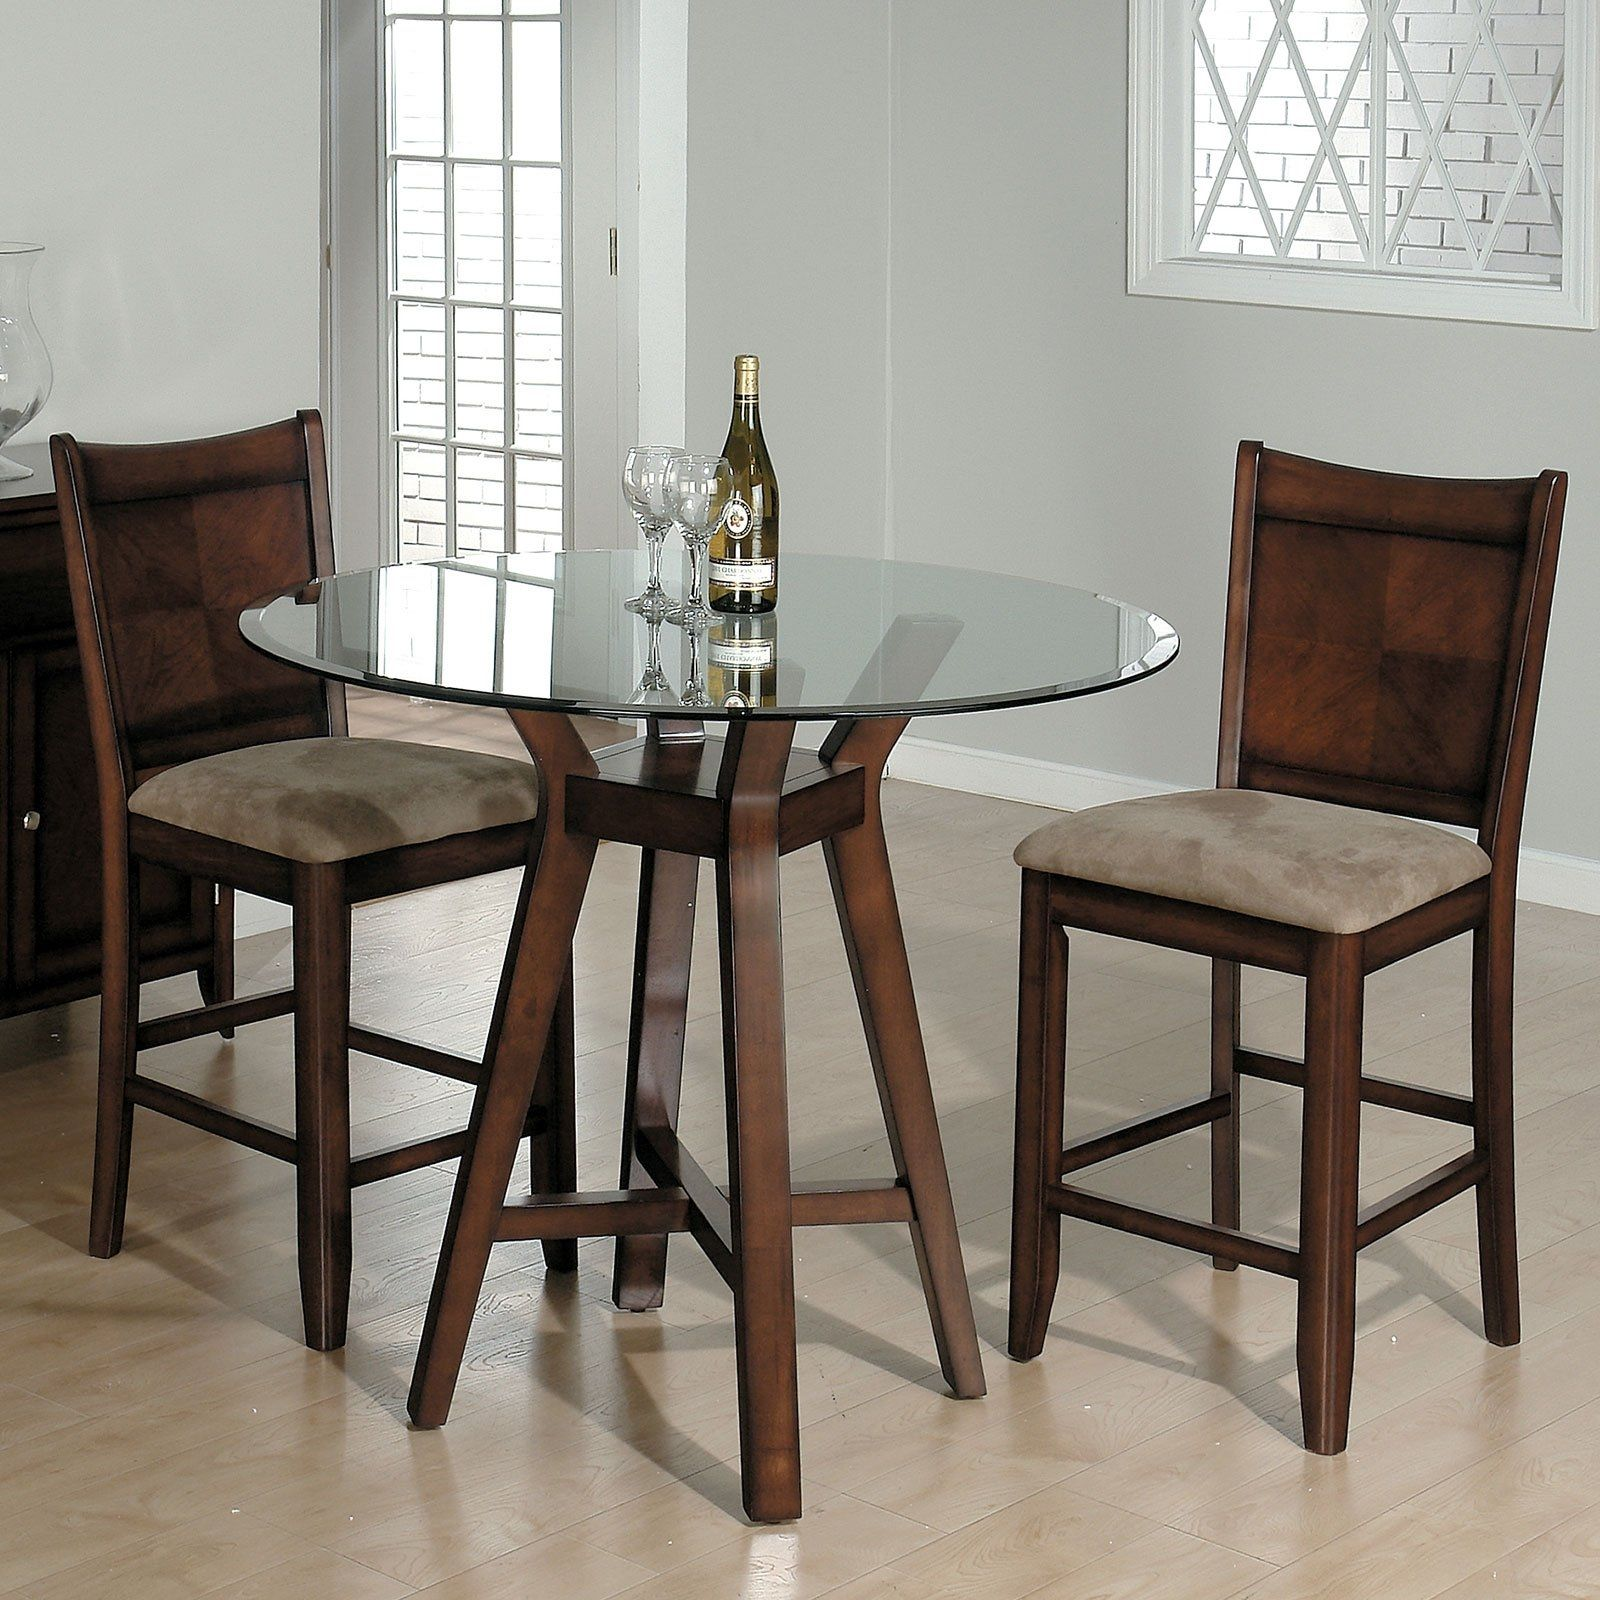 Kitchen Bistro Table And Chairs Stuhlede Com Kitchen Table Settings Small Kitchen Tables Round Dining Table Sets